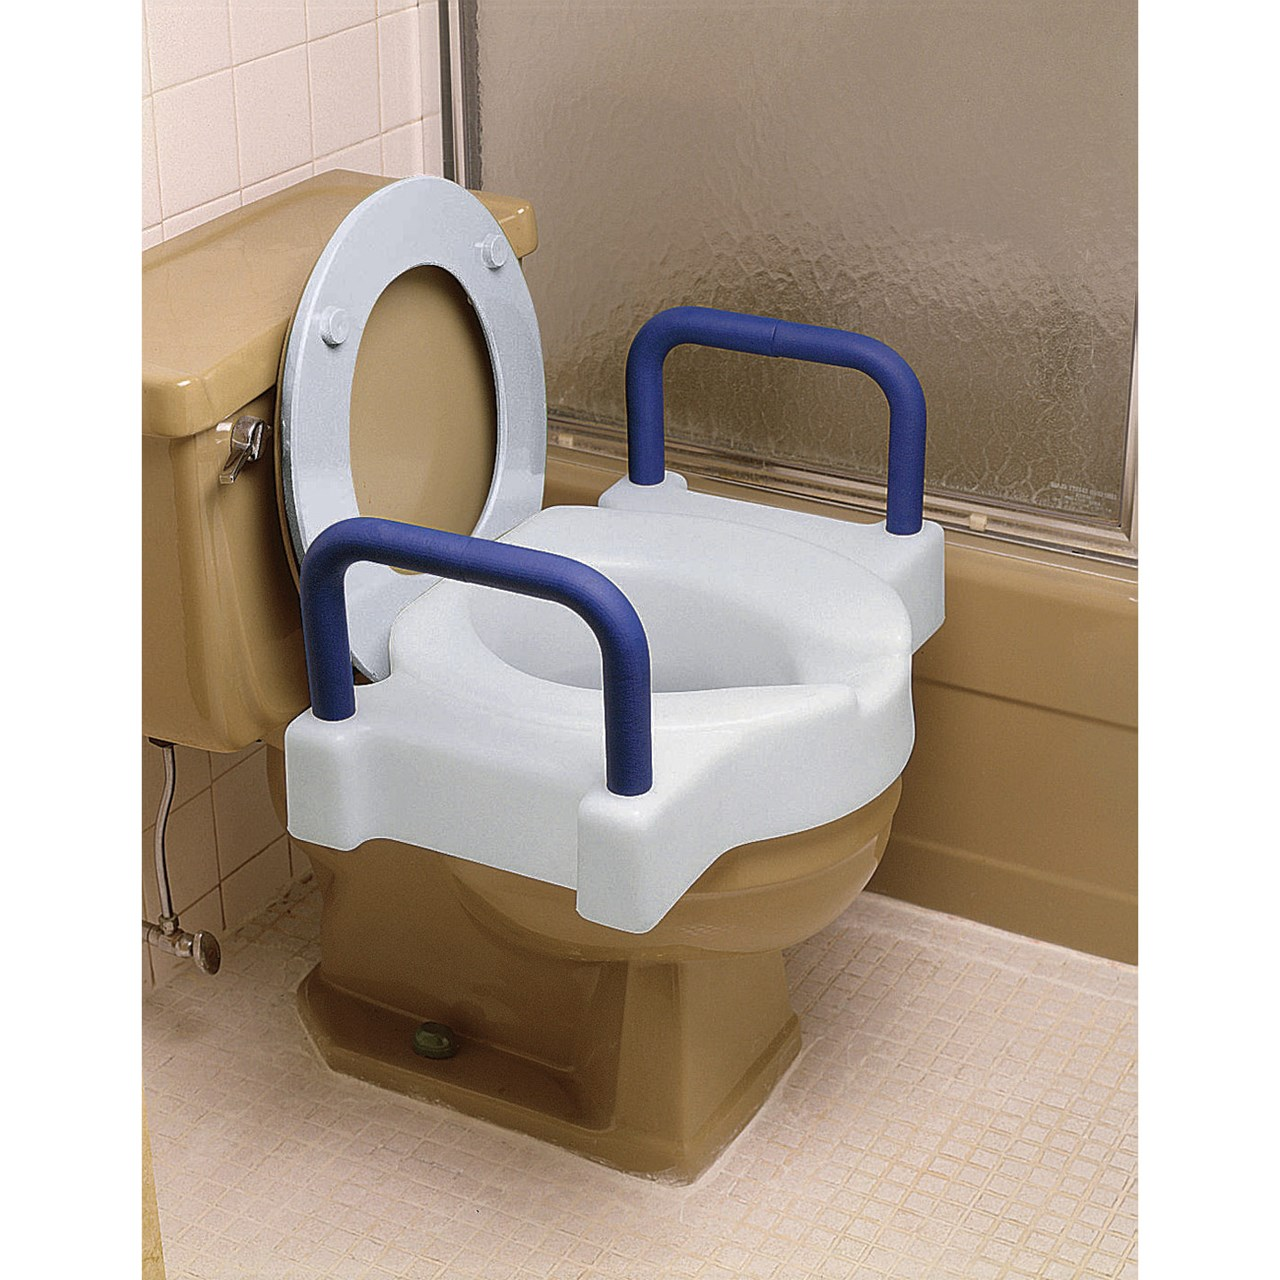 Maxiaids Tall Ette Raised Toilet Seat W Arms 4 In